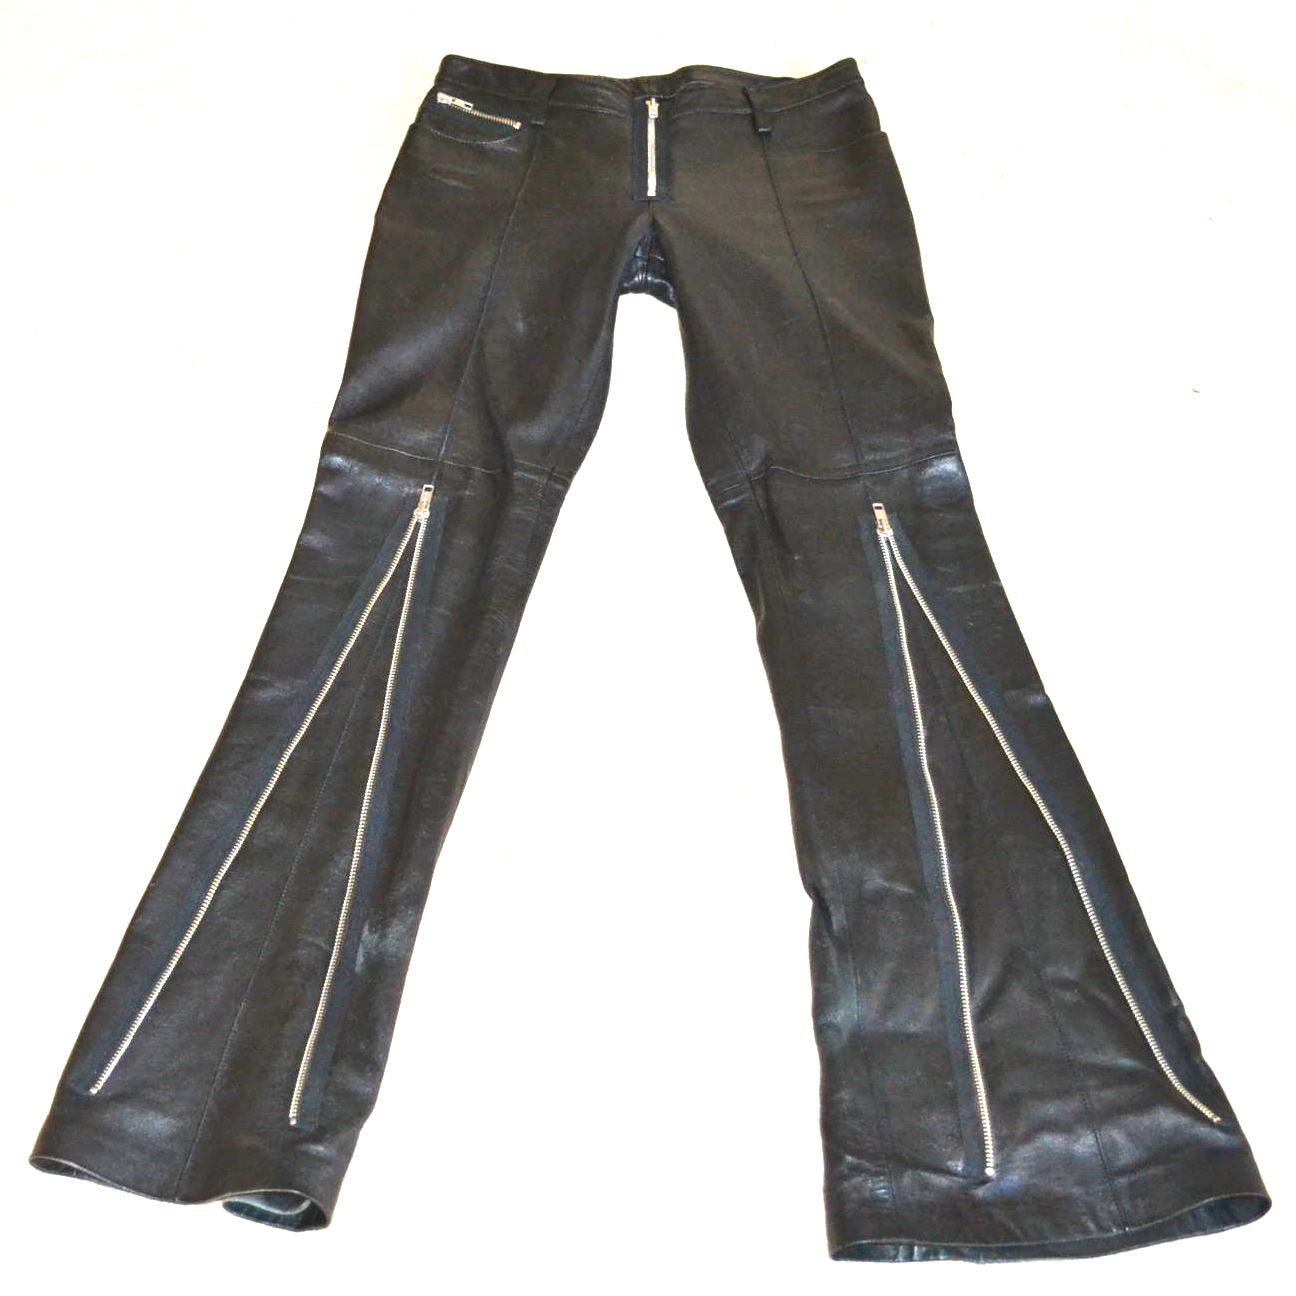 BEBE Leather Motorcycle Jeans Pants punk Rocker Zippers Leggings Flares Sz 4